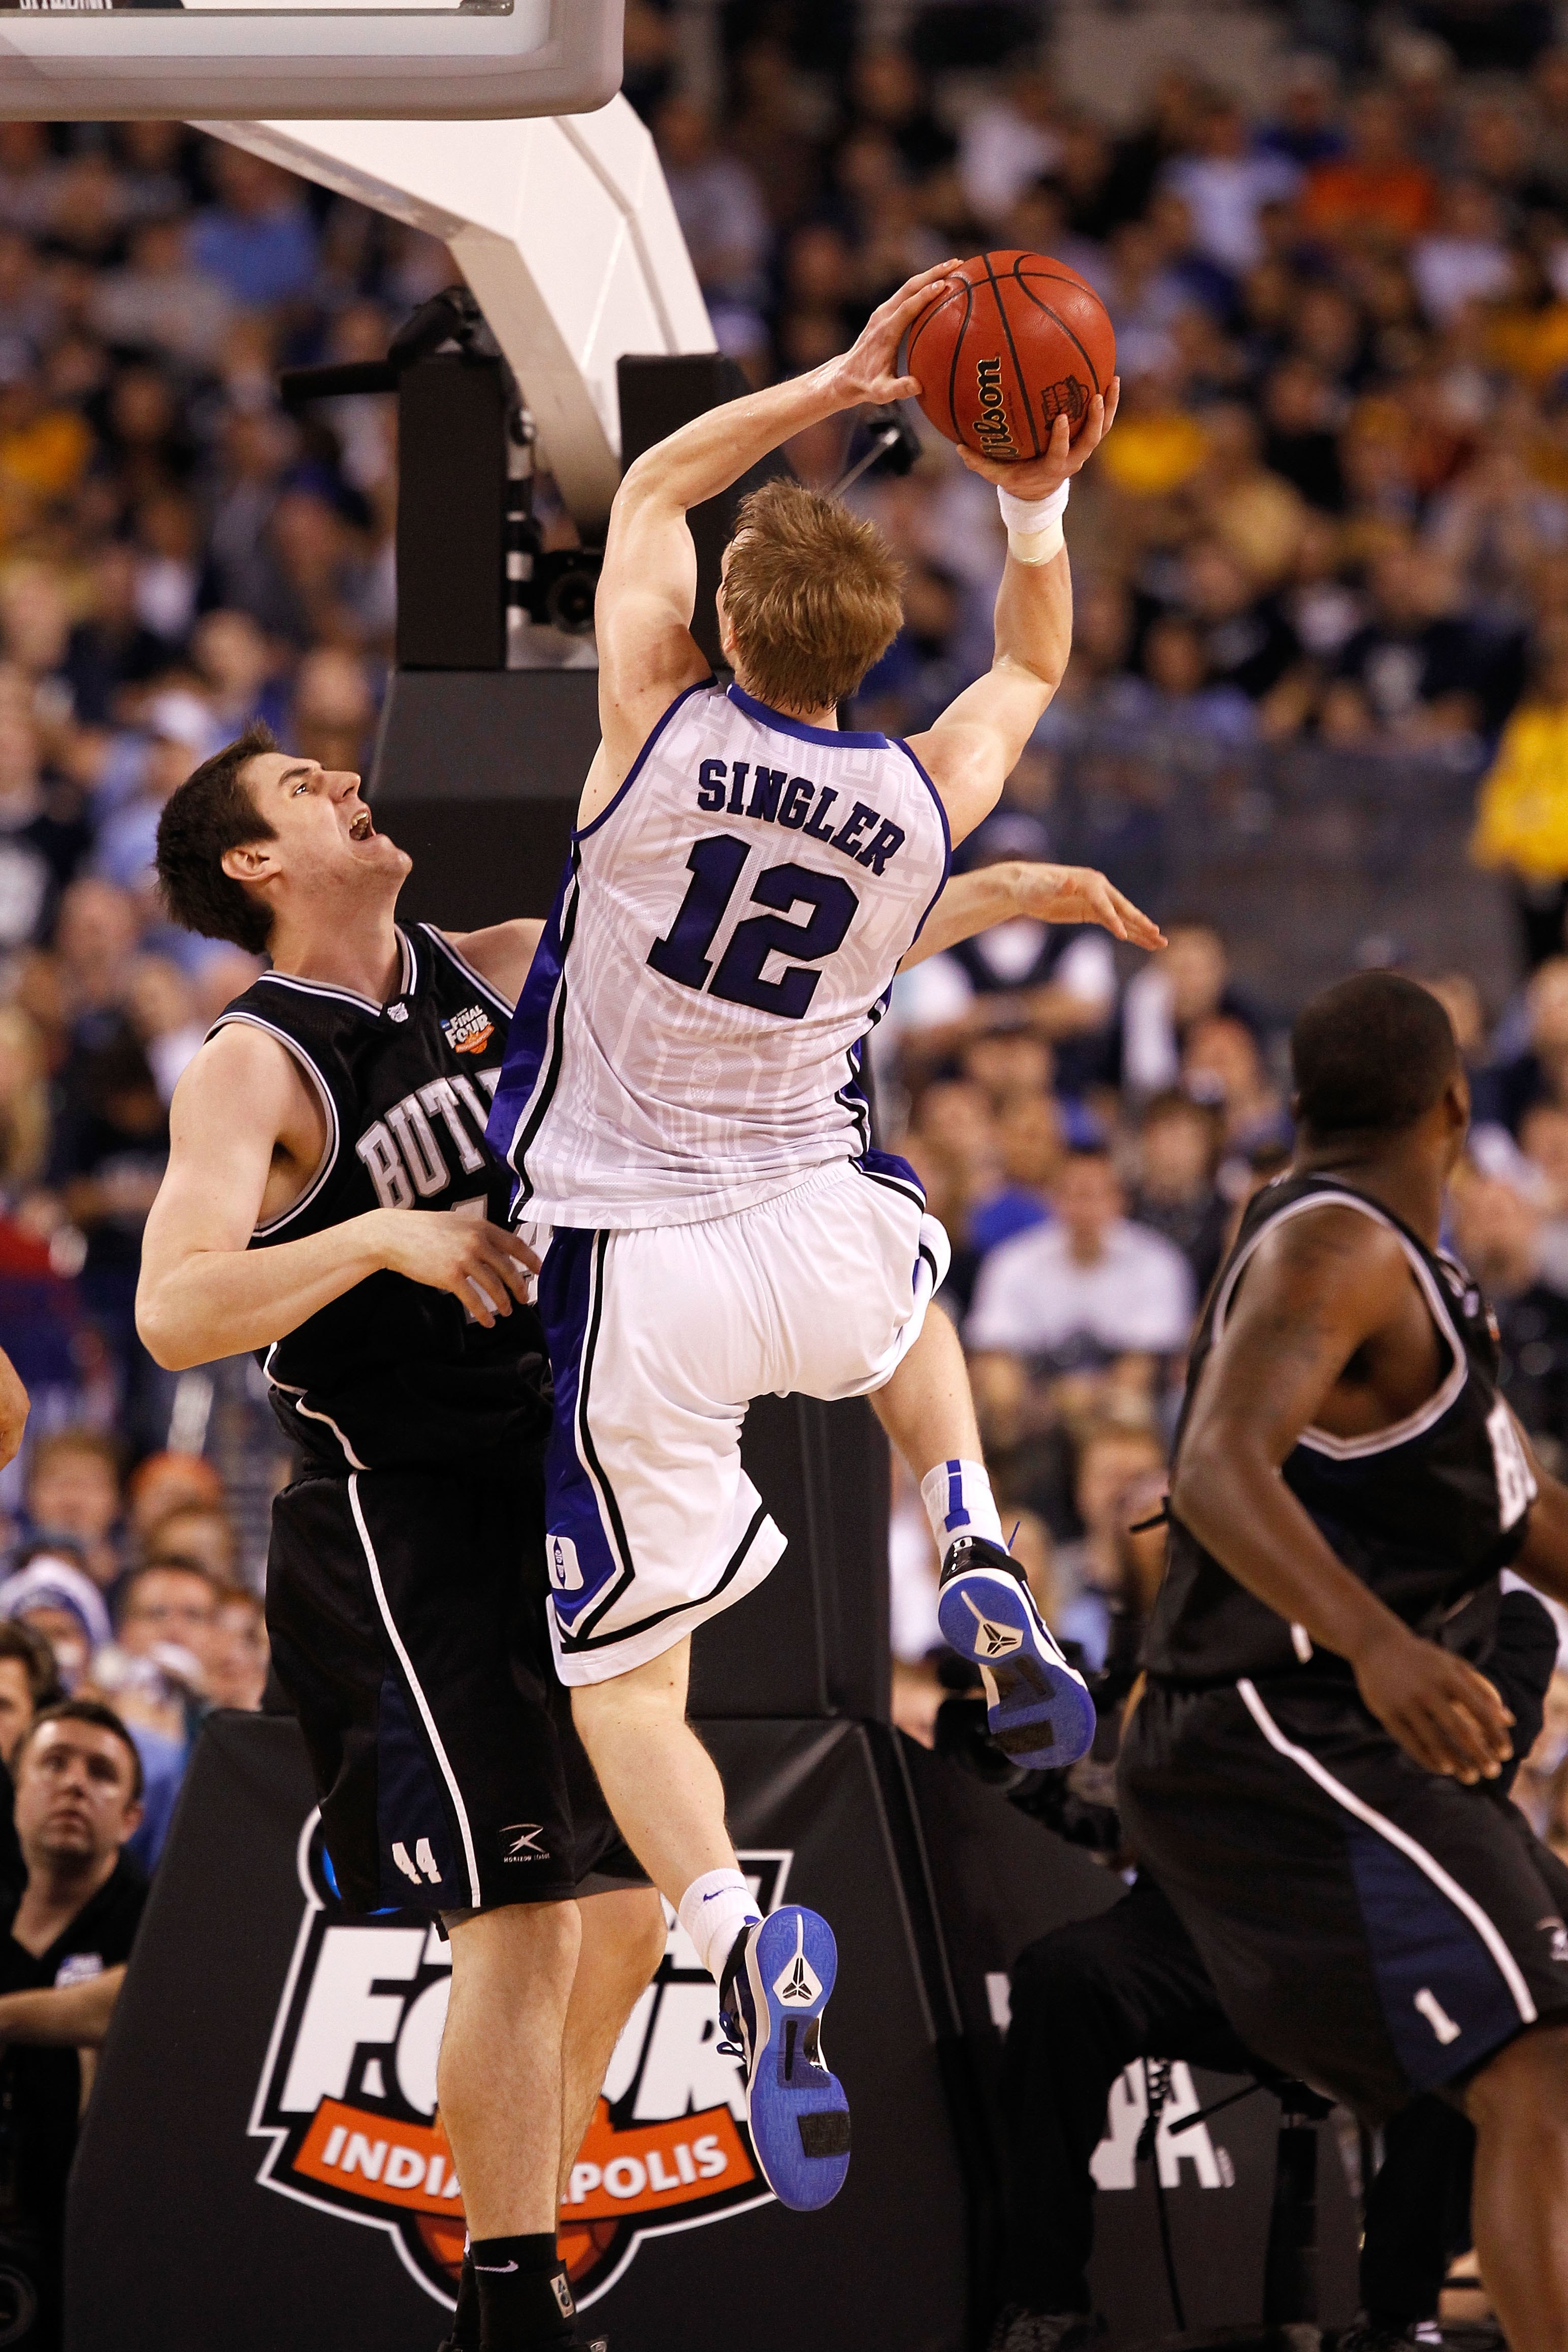 INDIANAPOLIS - APRIL 05:  Kyle Singler #12 of the Duke Blue Devils drives for a shot attempt against Andrew Smith #44 of the Butler Bulldogs during the 2010 NCAA Division I Men's Basketball National Championship game at Lucas Oil Stadium on April 5, 2010